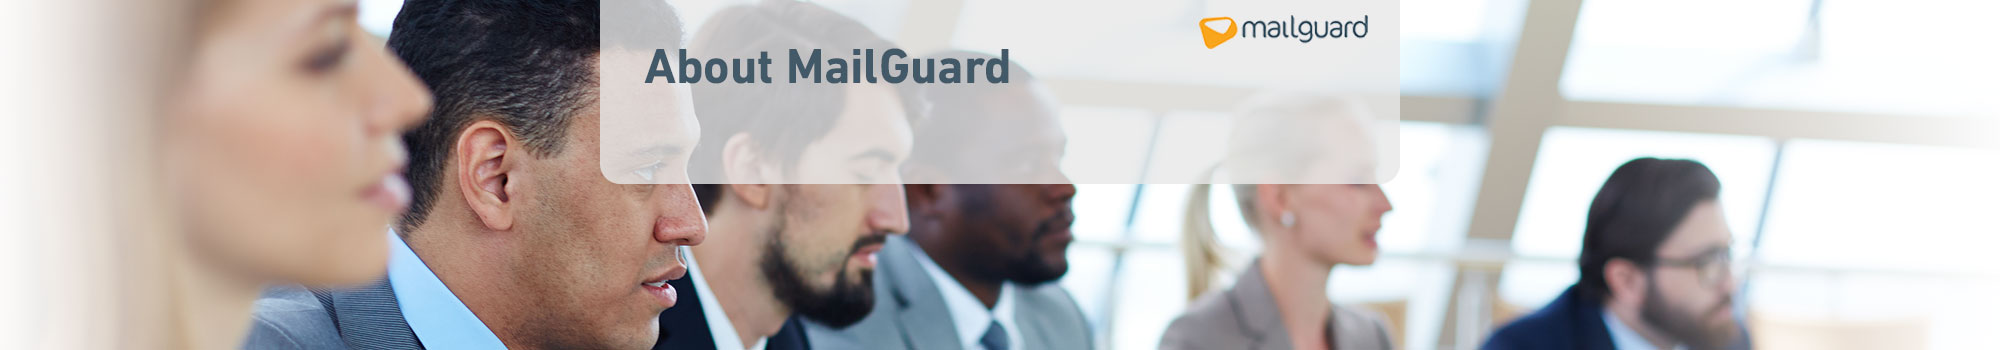 About MailGuard Cloud Security Experts